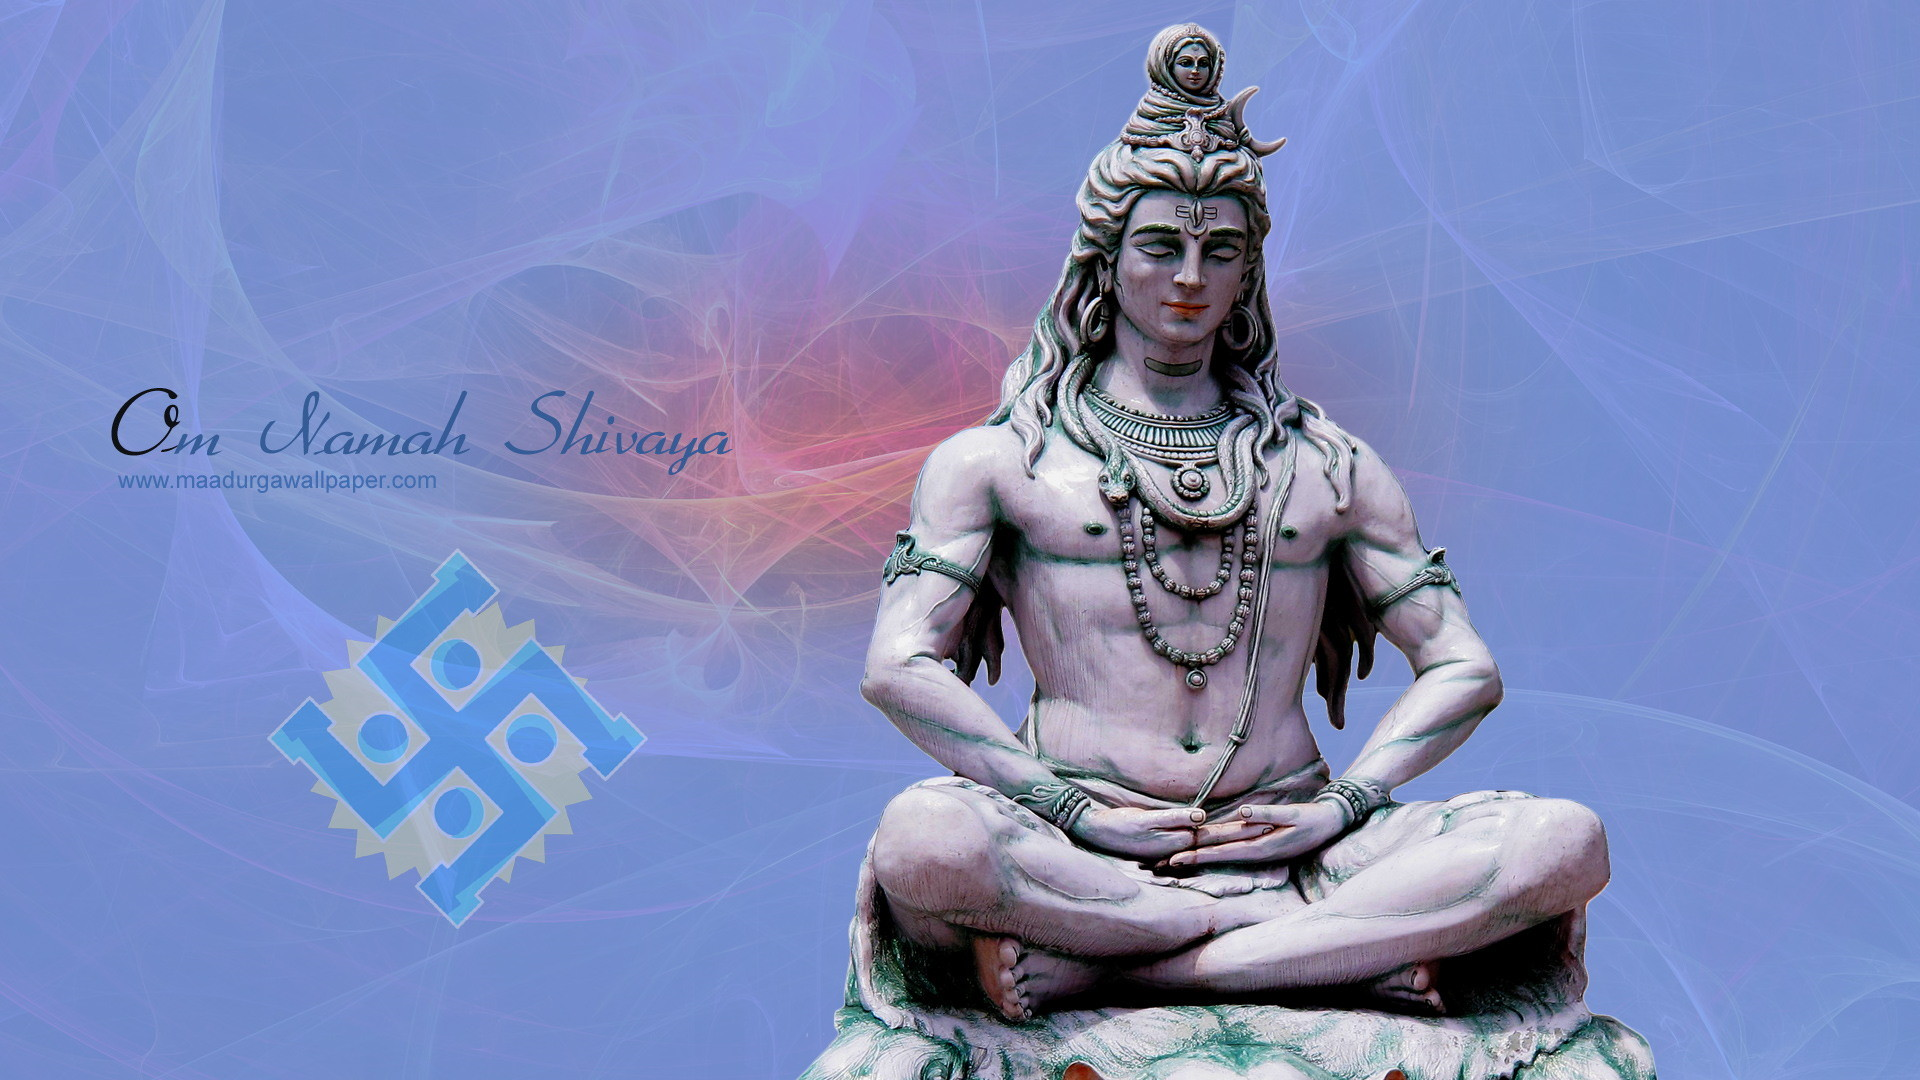 Shiva Smoking Chillum Hd Wallpaper God Wallpaper 183 ① Wallpapertag